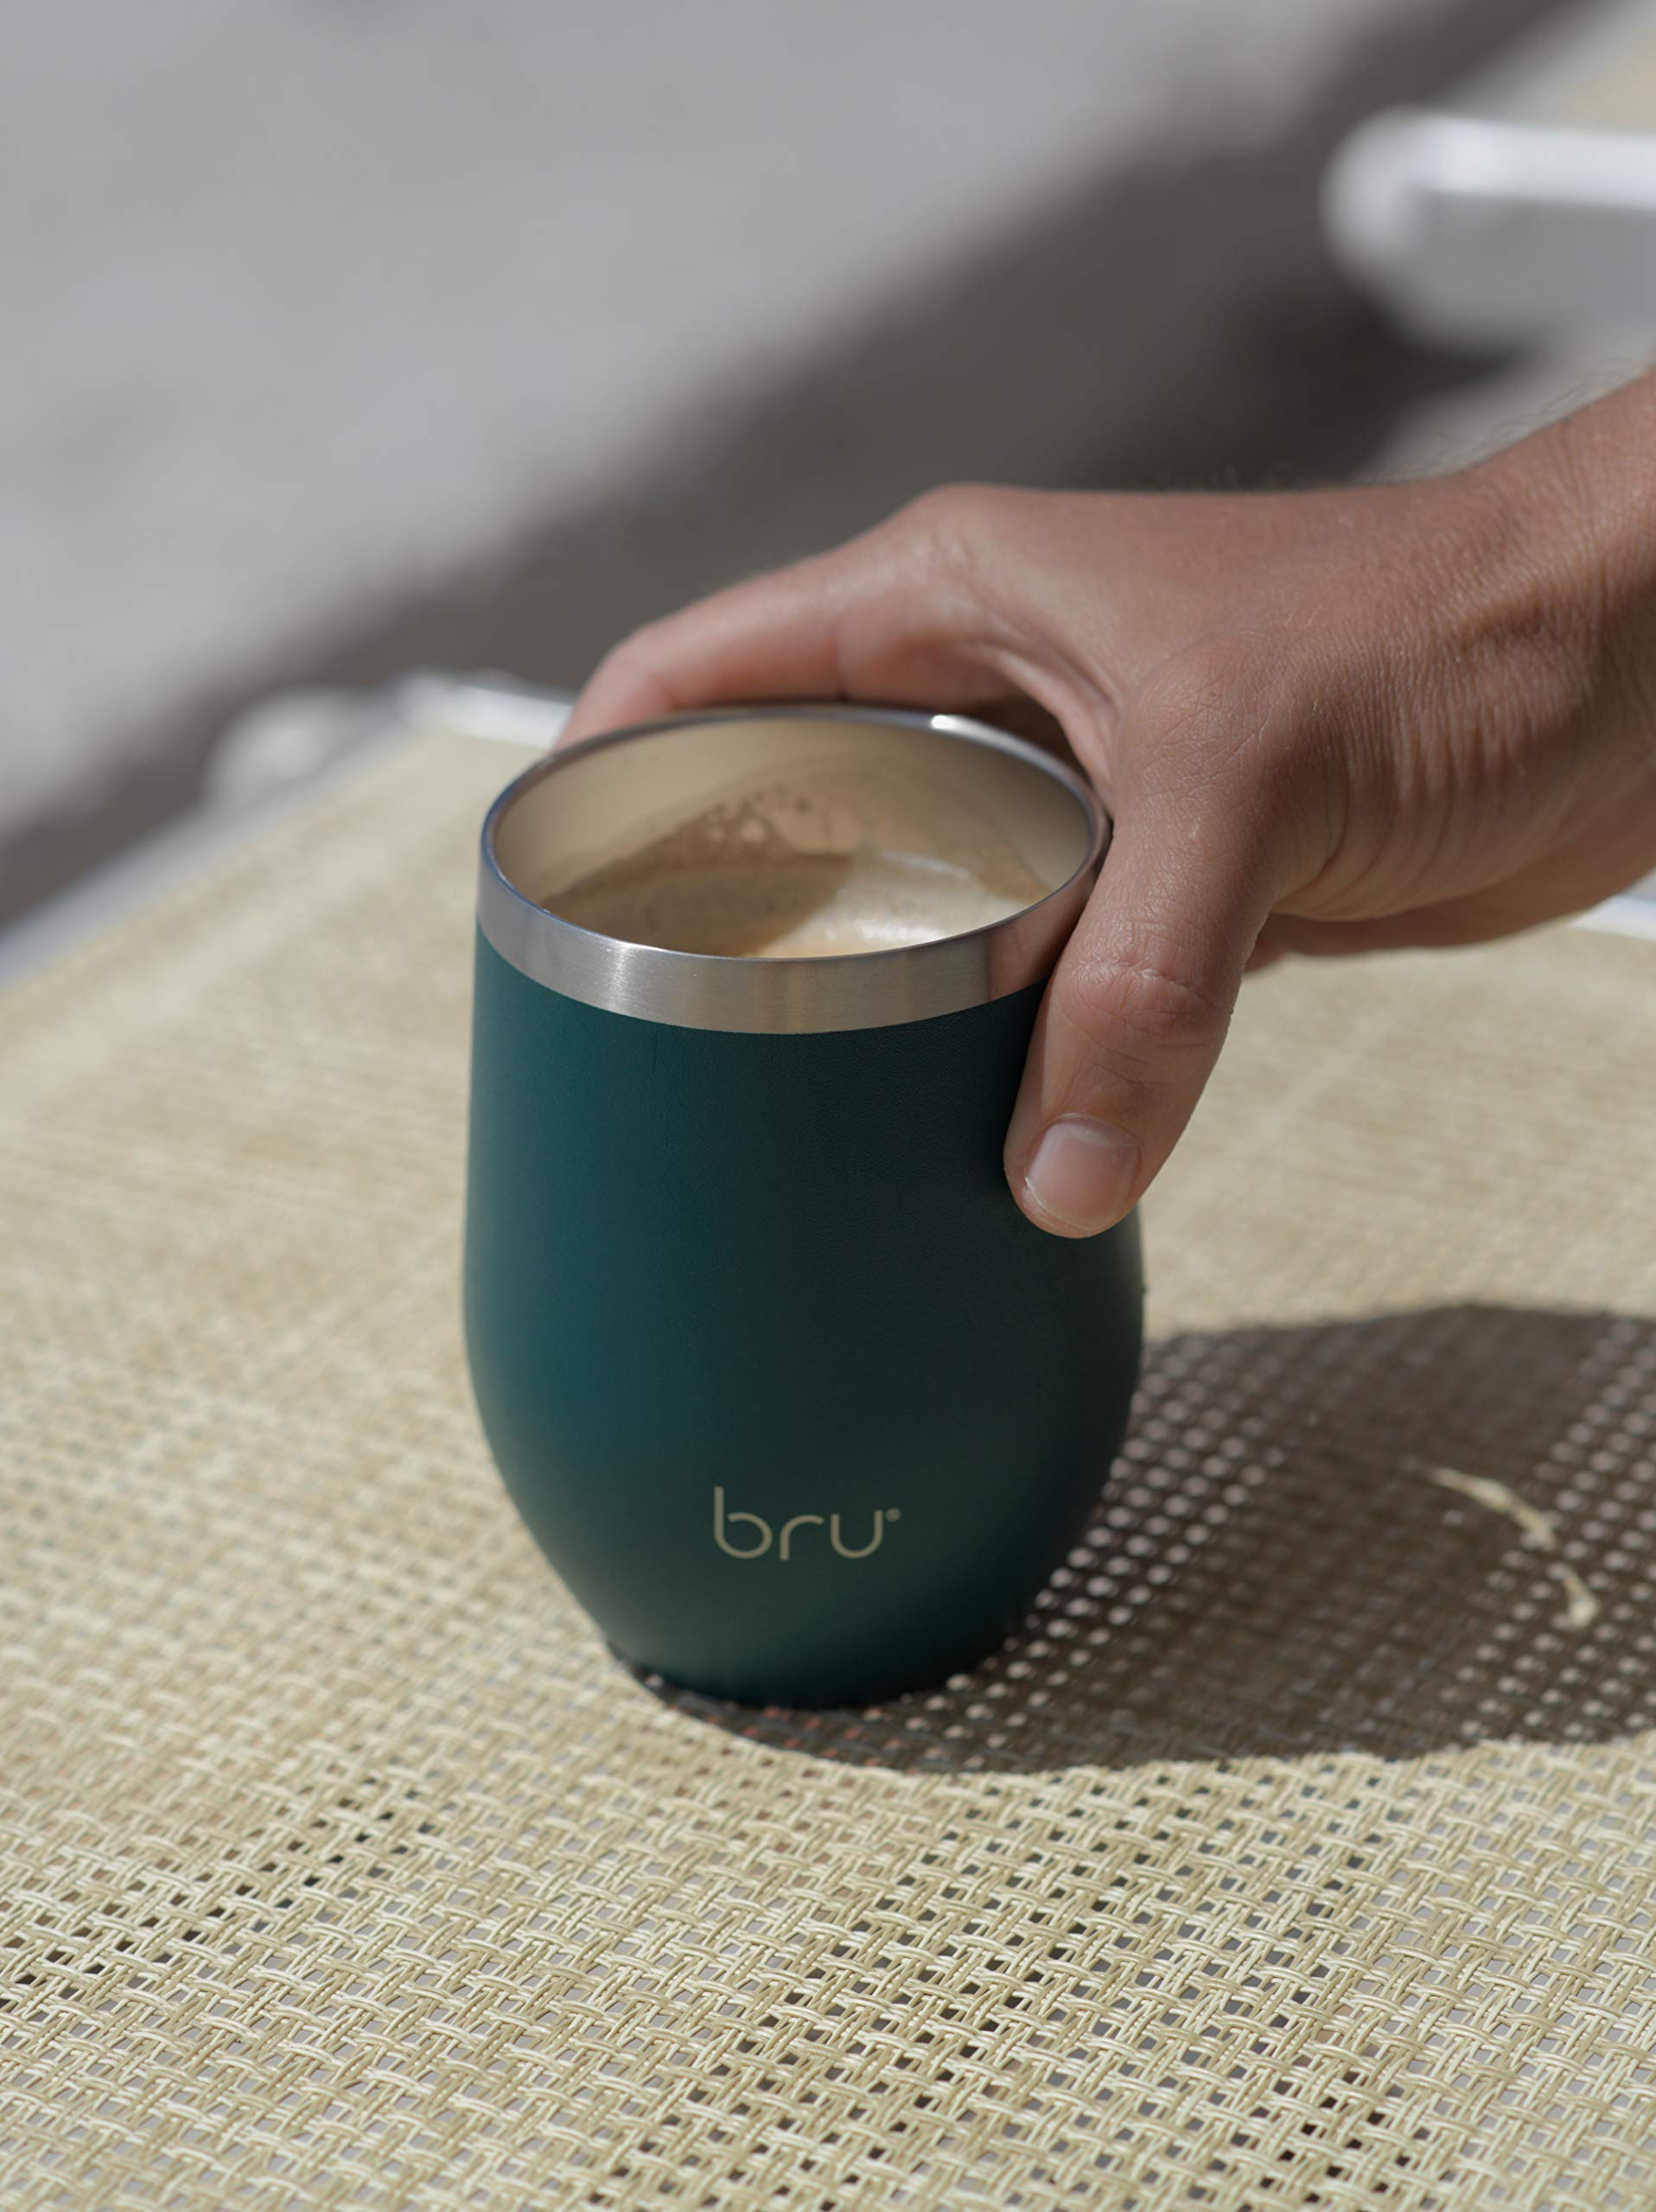 bru-The-Reusable-Eco-Friendly-Takeaway-Thermal-Coffee-Cup-12oz340ml-Double-Walled-Stainless-Steel-3-Hours-Hot-5-Hours-Cold-Stylish-Modern-Durable-BPA-Free-Slider-Lid